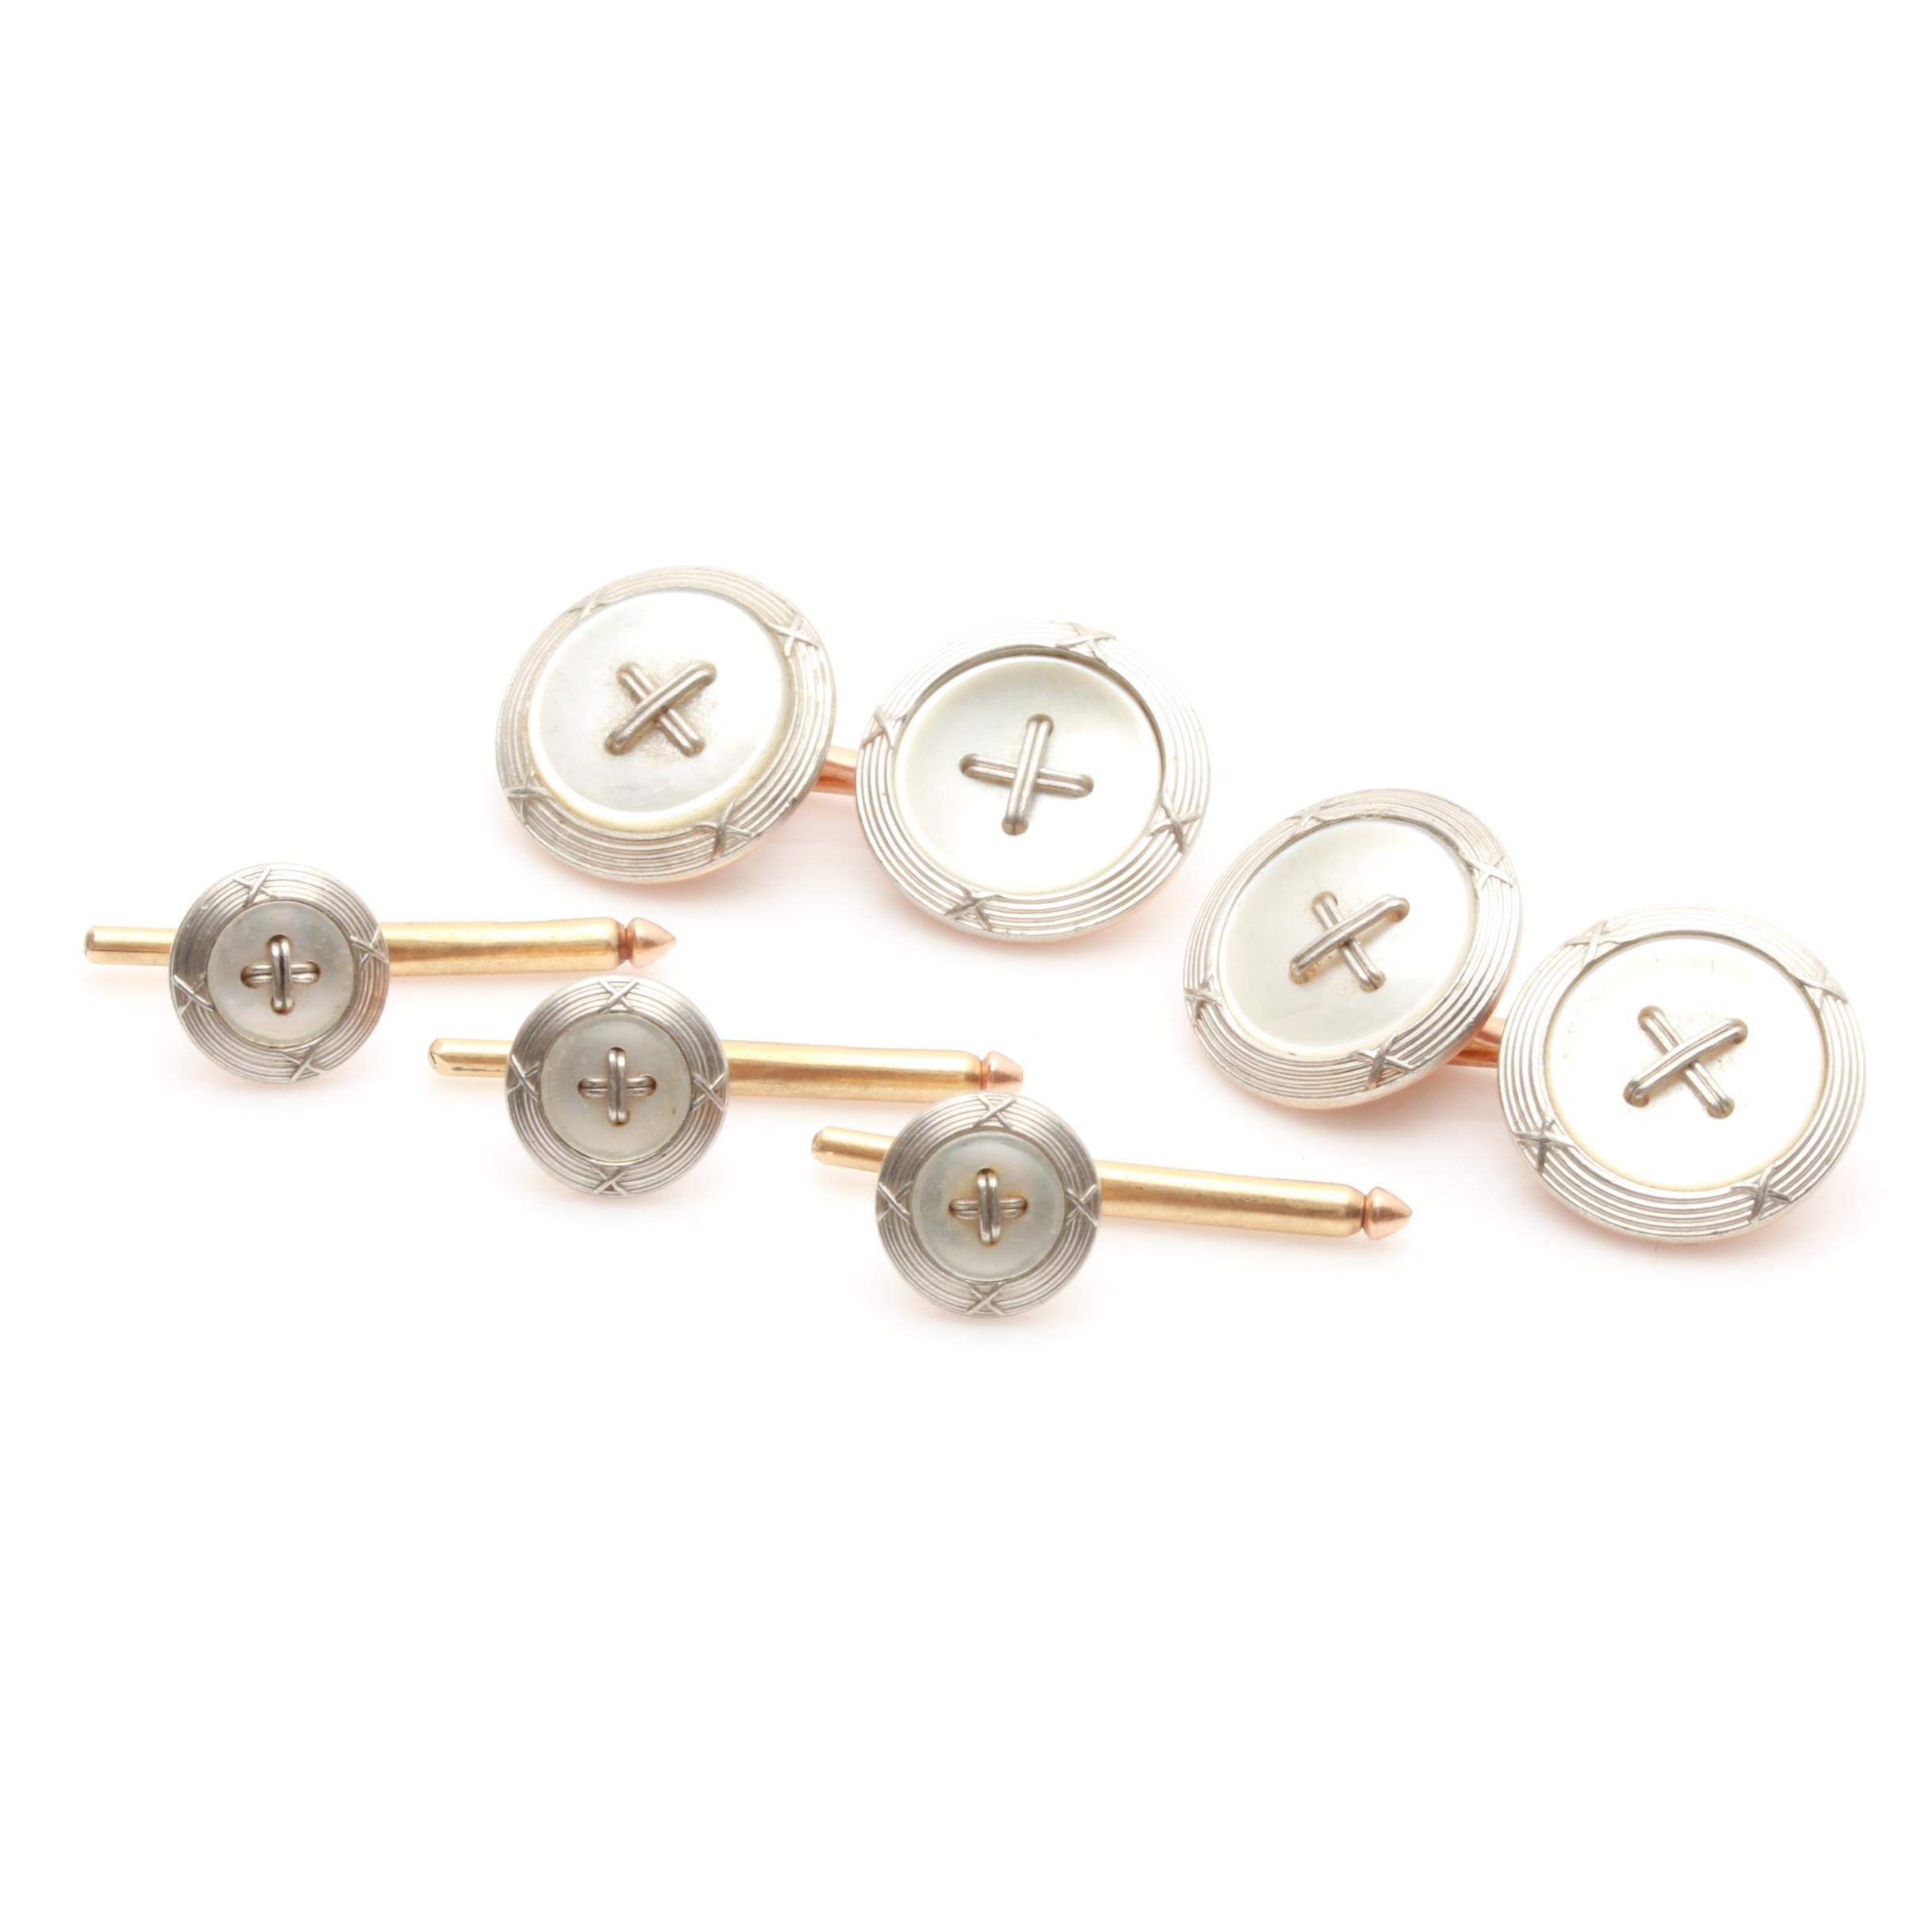 Carrington & Co. 14K Yellow Gold Mother of Pearl Cufflink and Shirt Stud Set